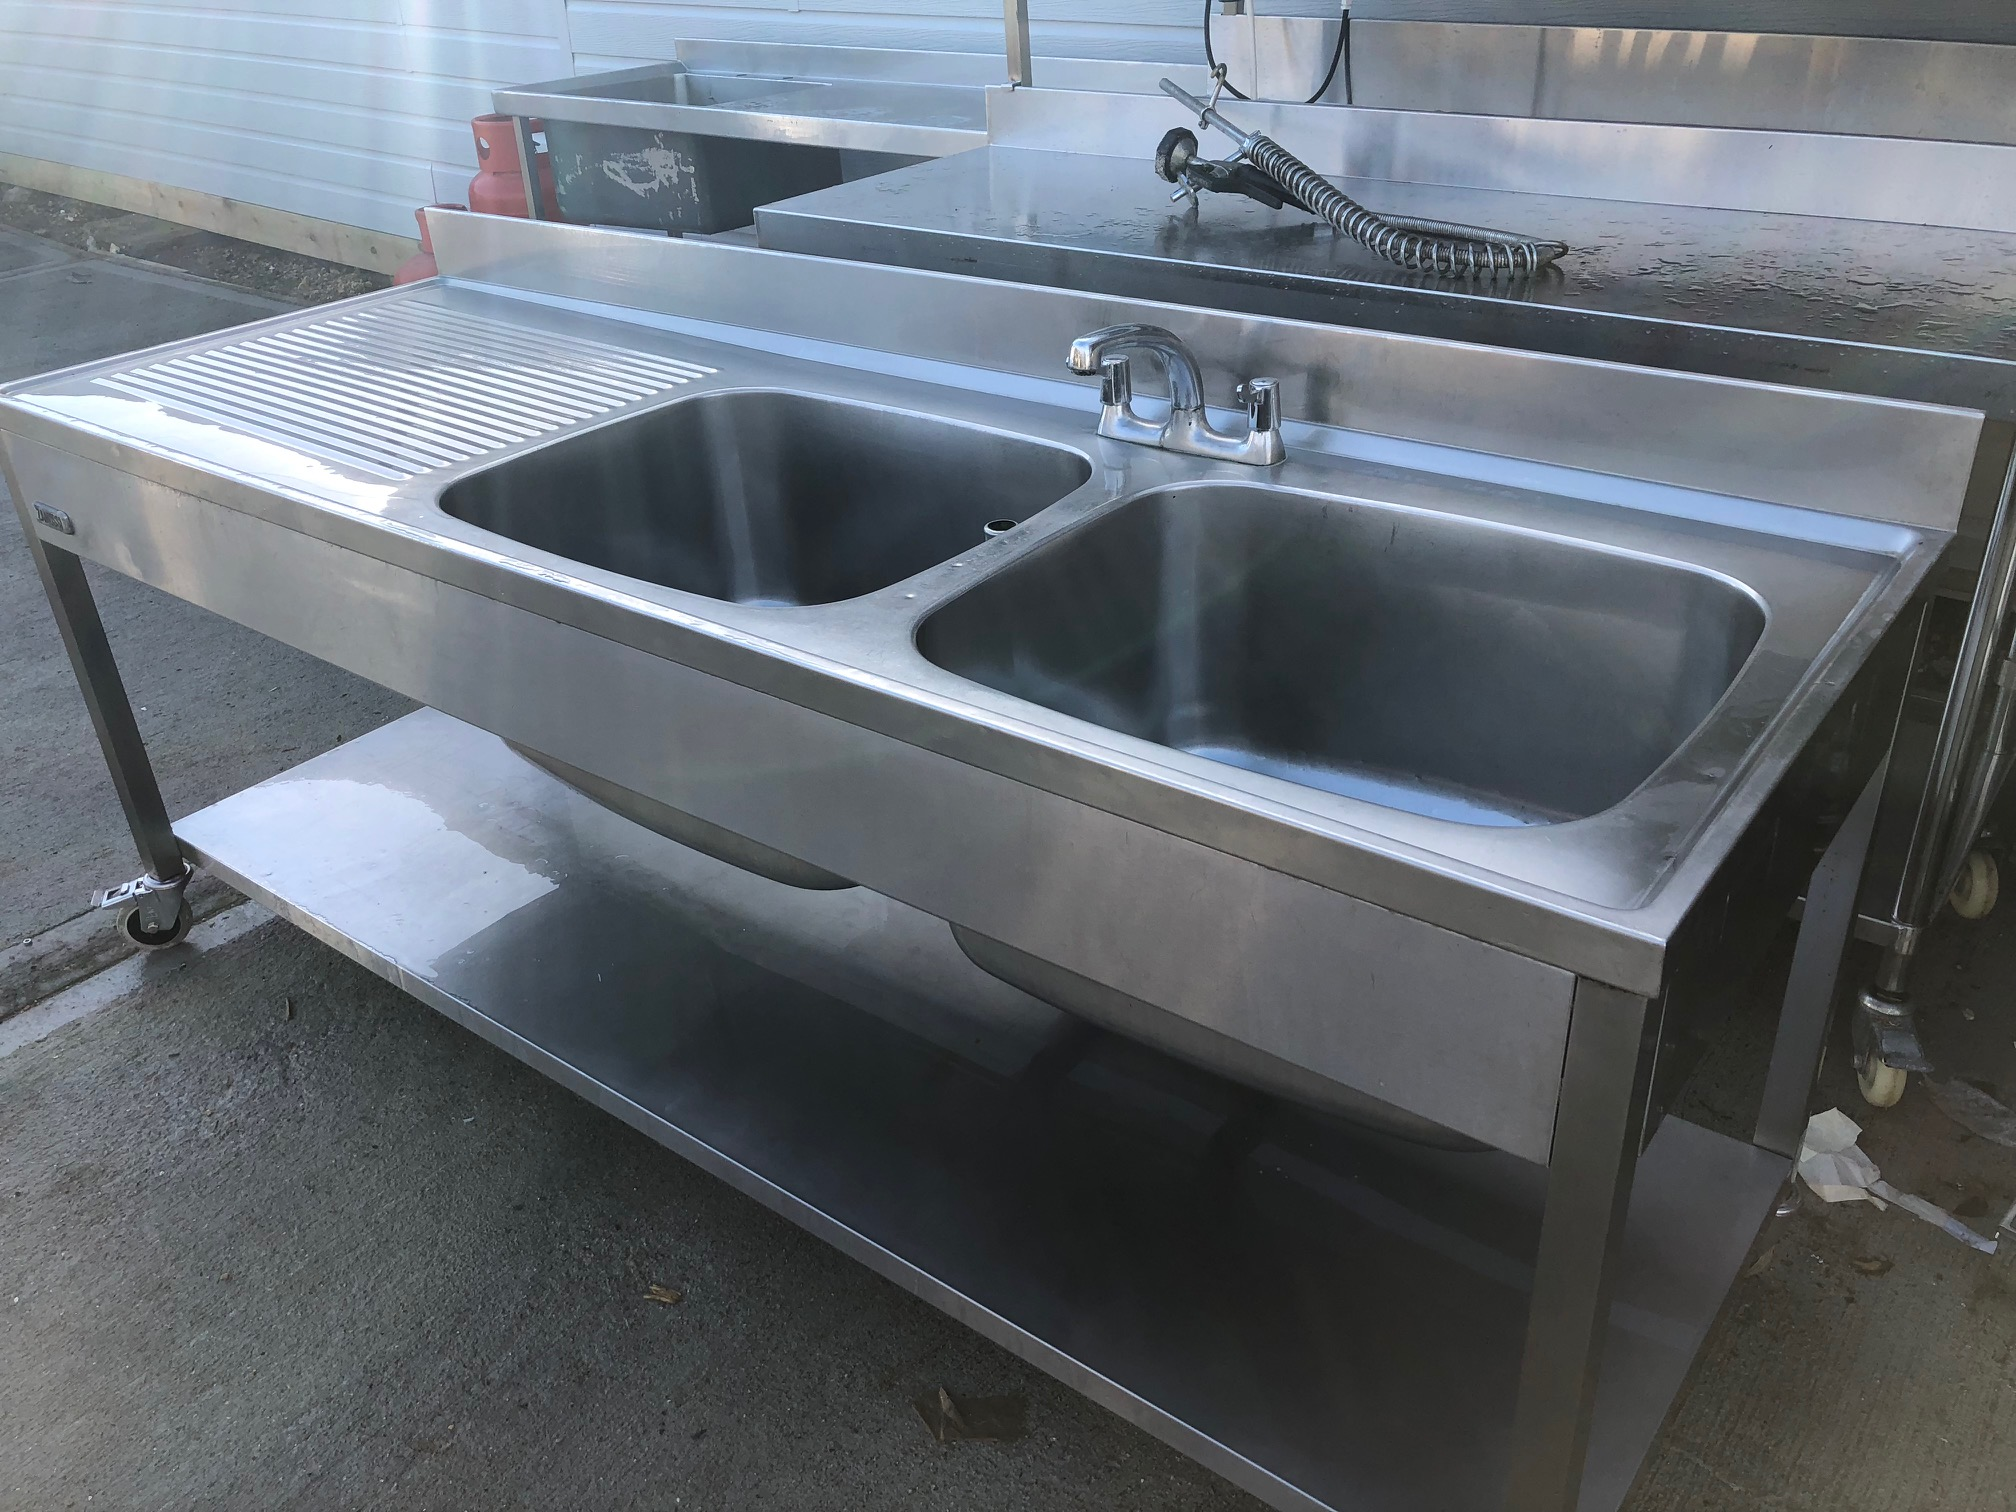 Stainless Steel Commercial Sink With 2 Big Bowls With Self Underneath